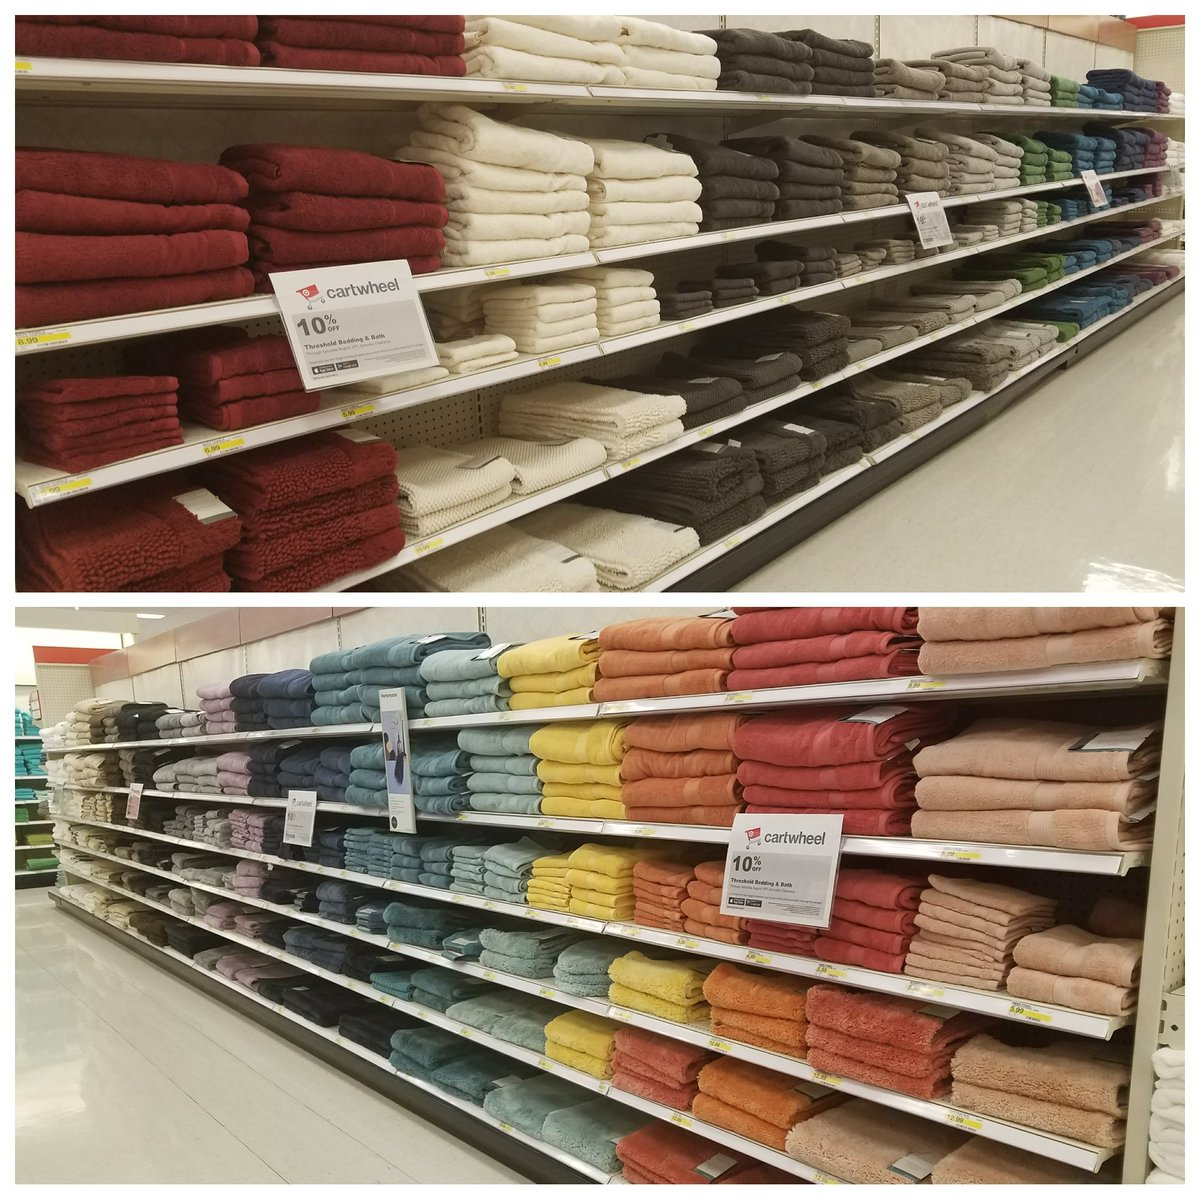 Shining bright &amp; shouting cartwheel deals in our Threshold bath, bedding &amp; decor just in time for BTC week! #T2320ModelStore #D303 #G392<br>http://pic.twitter.com/sklBjGumSU